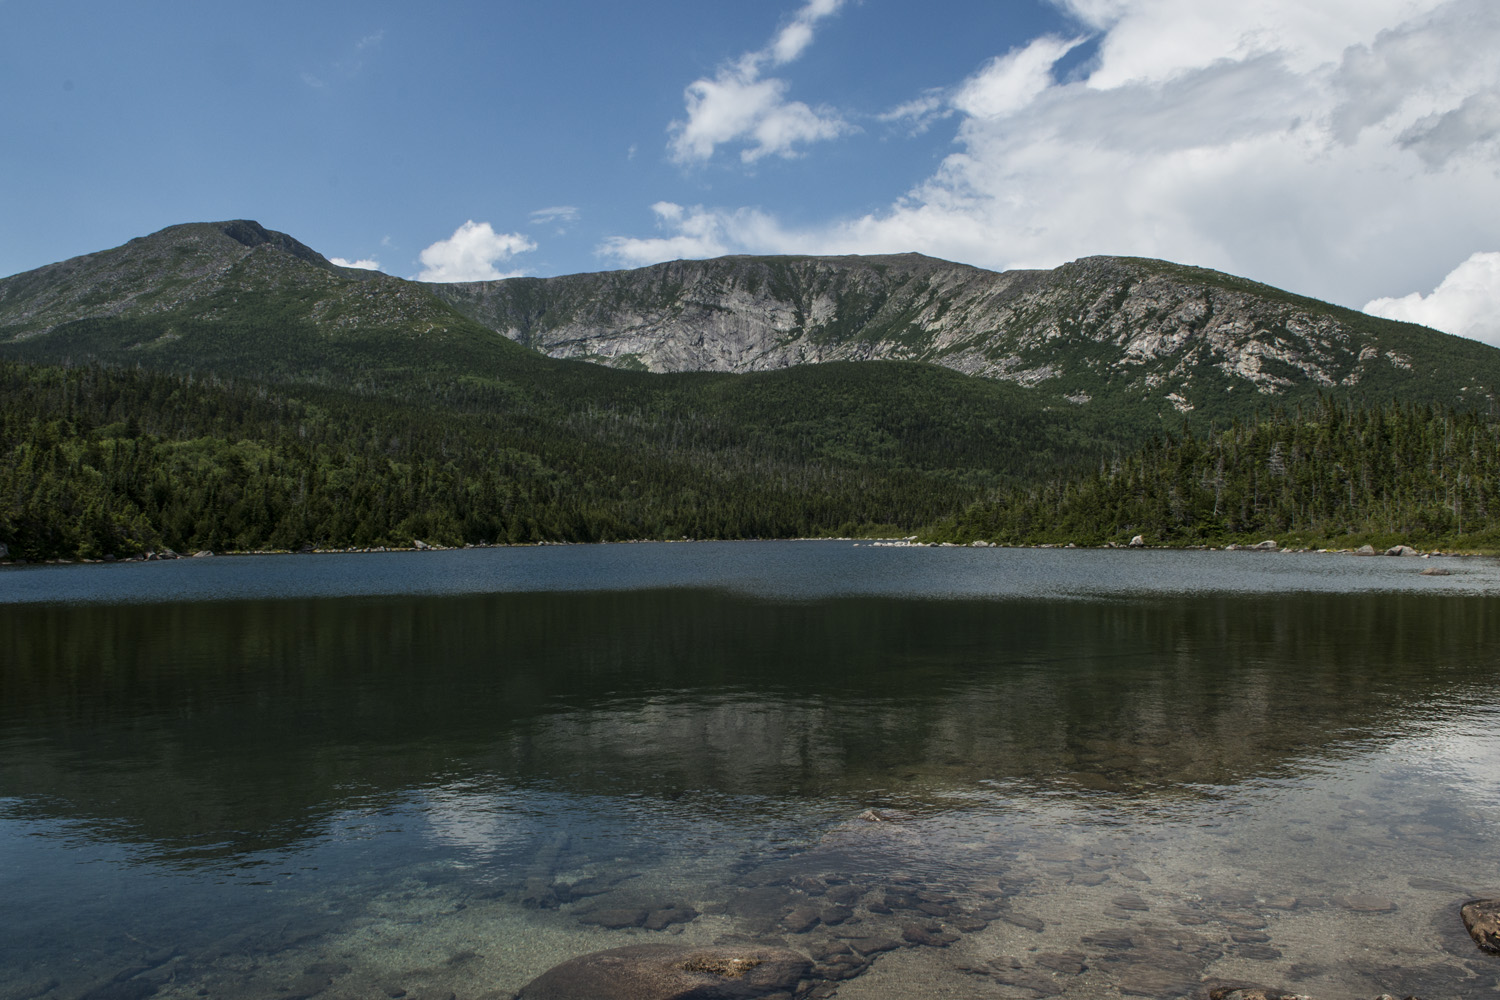 View of Katahdin from Lower Basin Pond